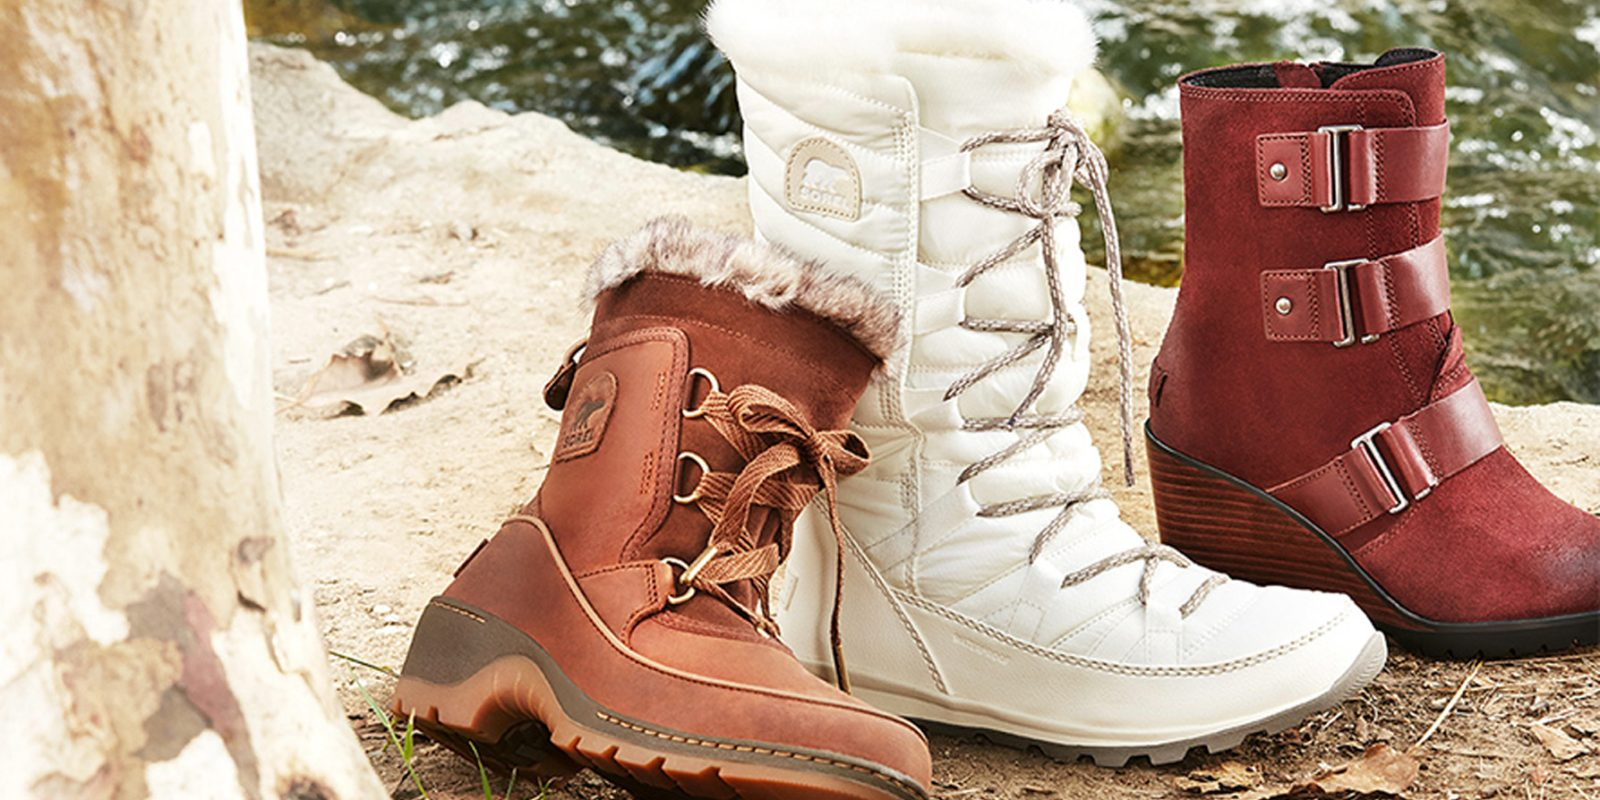 28f3c50ac1e3 Sorel s End of Season Sale offers up to 40% off its most popular boots from   53